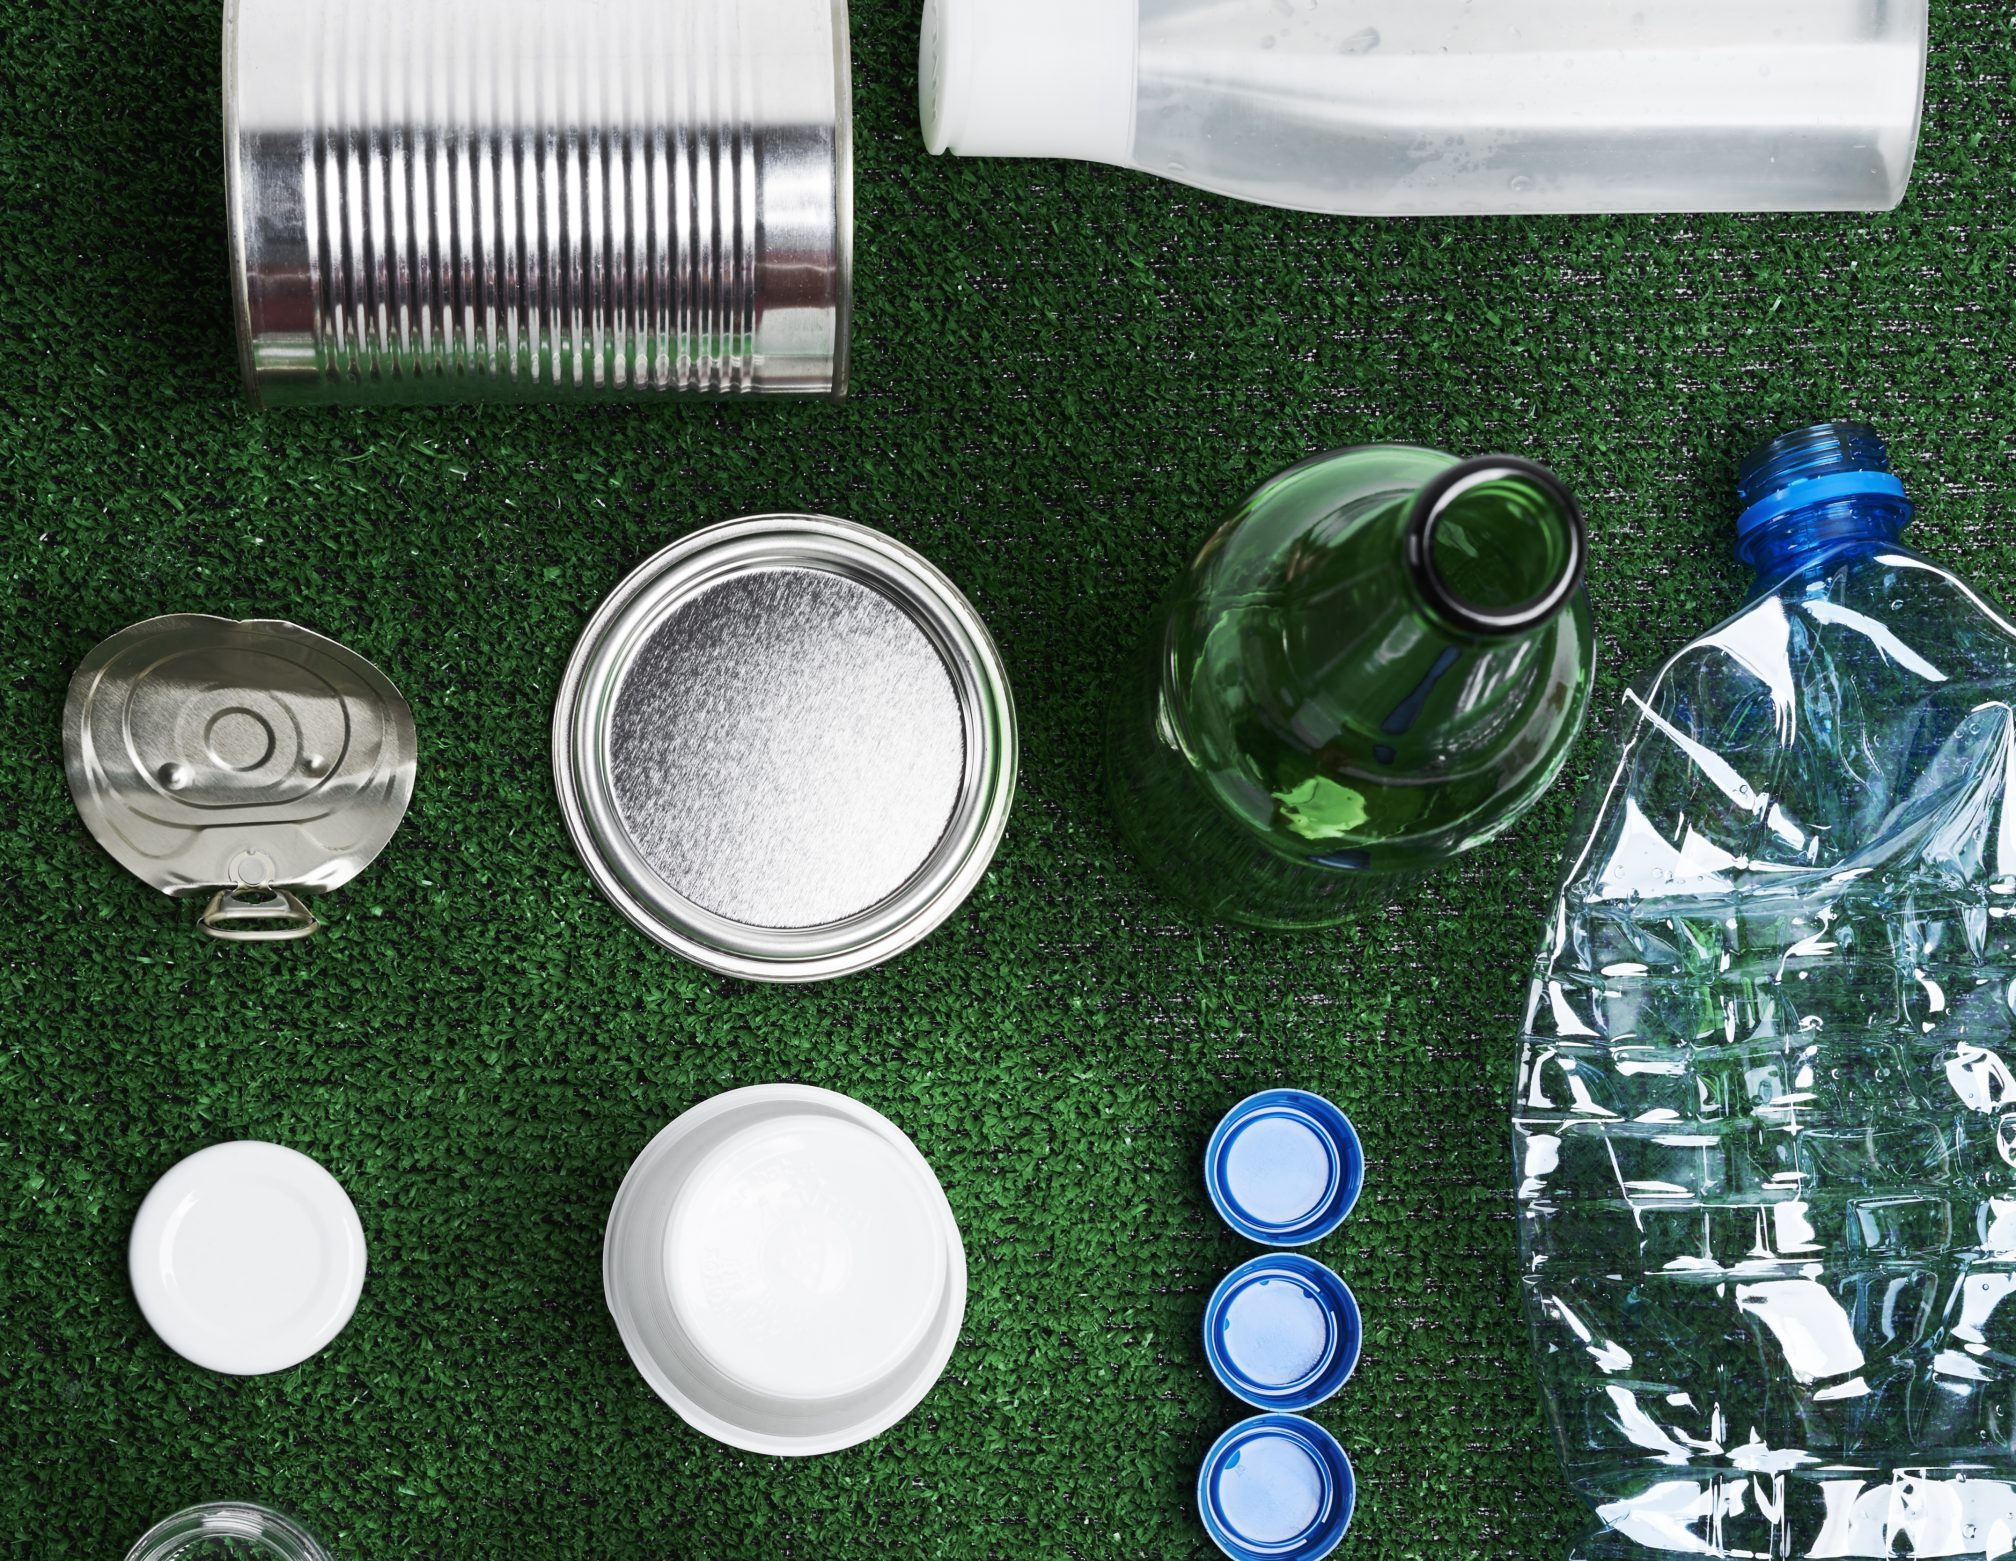 http://pugemak.com.tr/wp-content/uploads/2020/04/different-kinds-of-garbage-for-recycling-BR2DD5V-scaled-e1586260040715.jpg